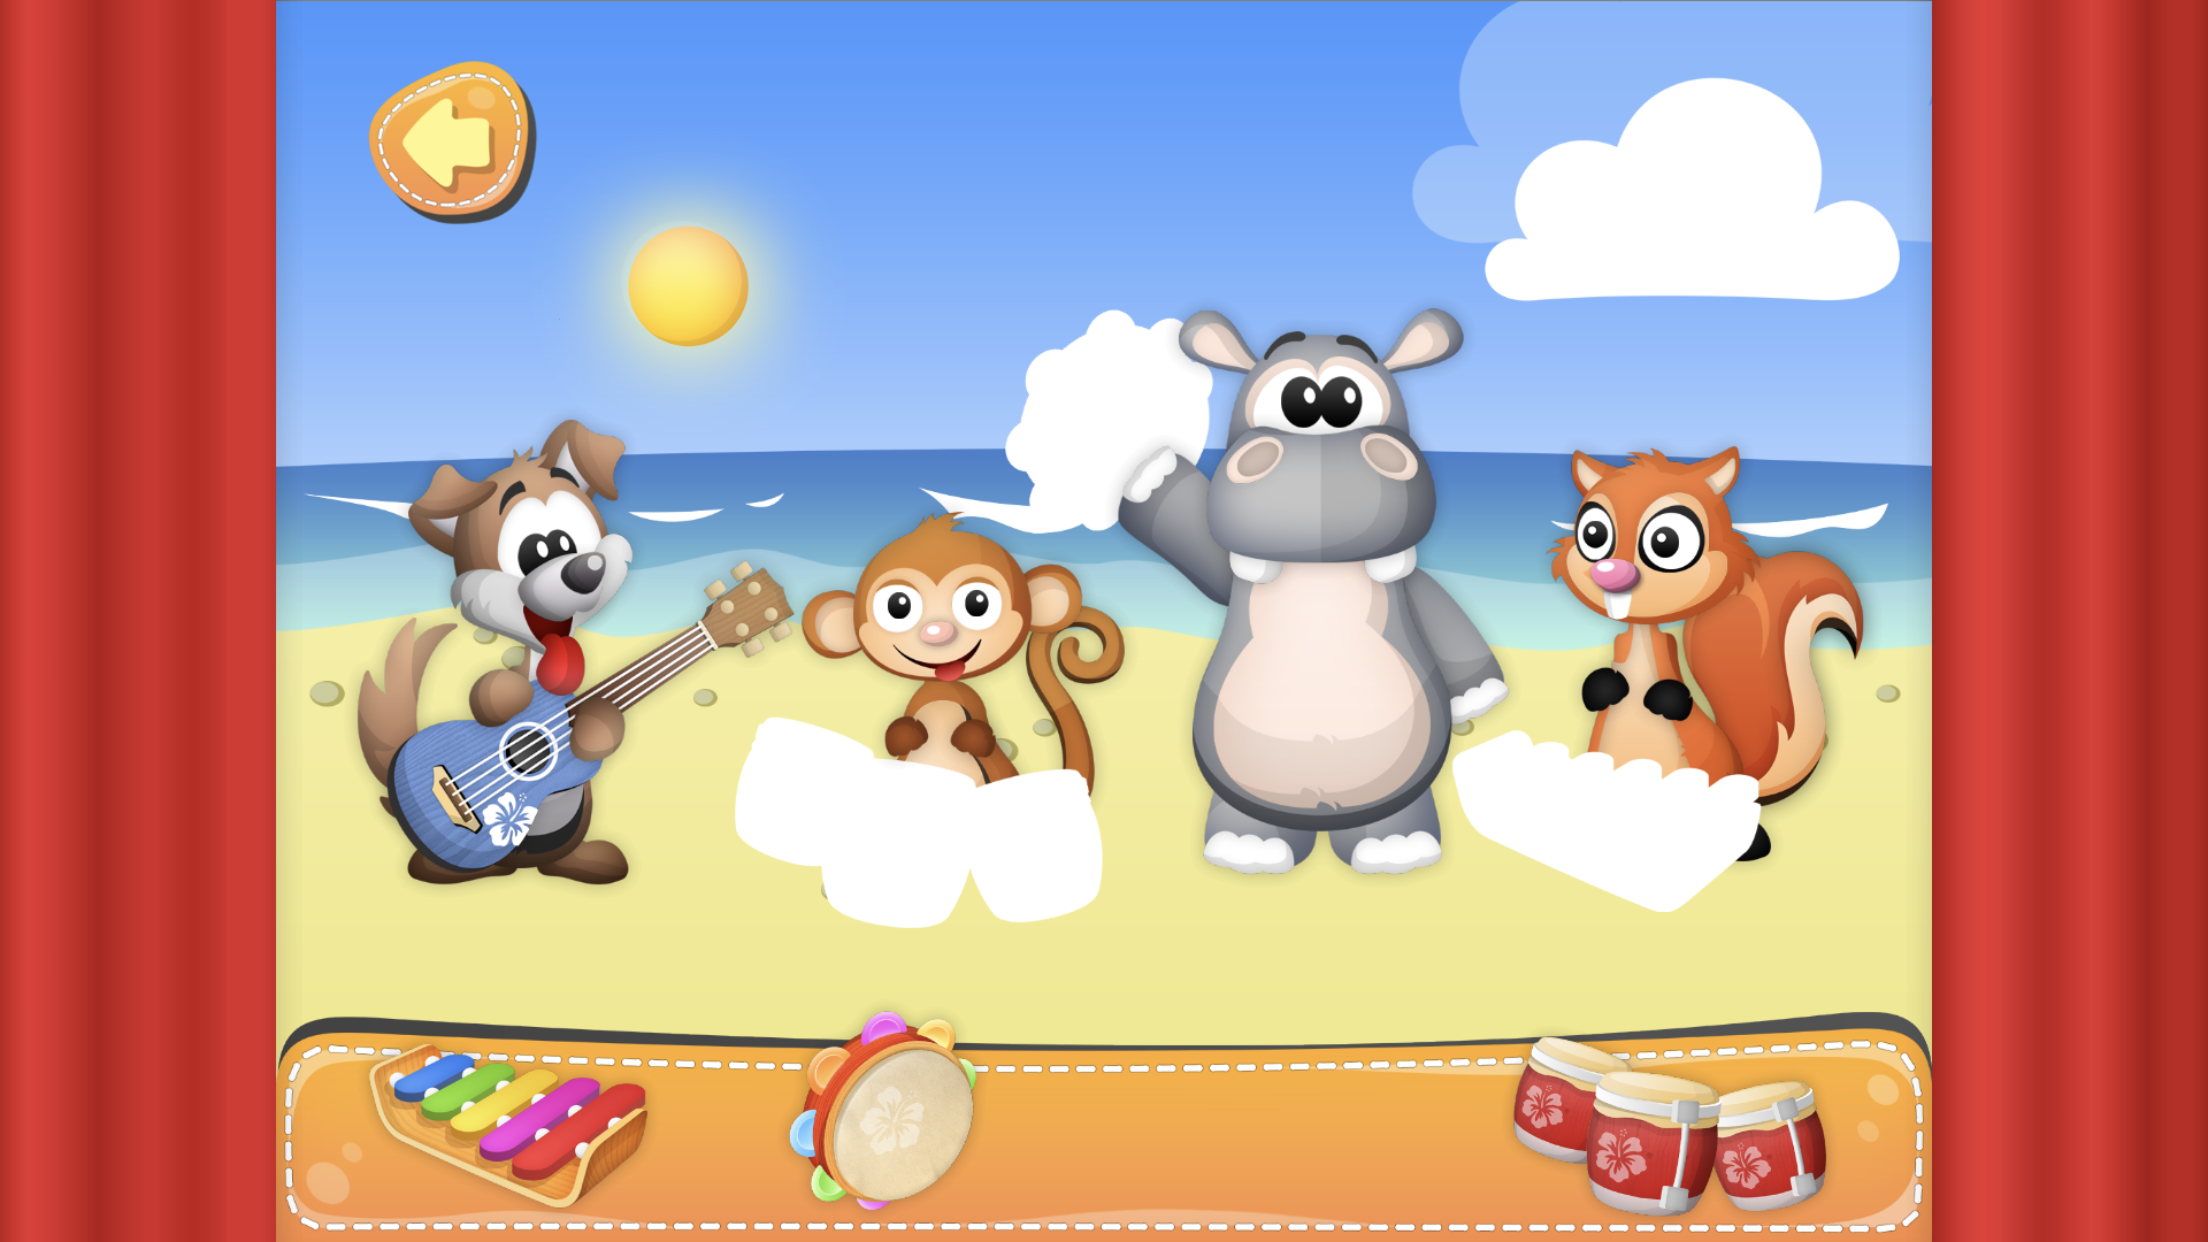 13 Free Game Apps for Kids to Download ASAP